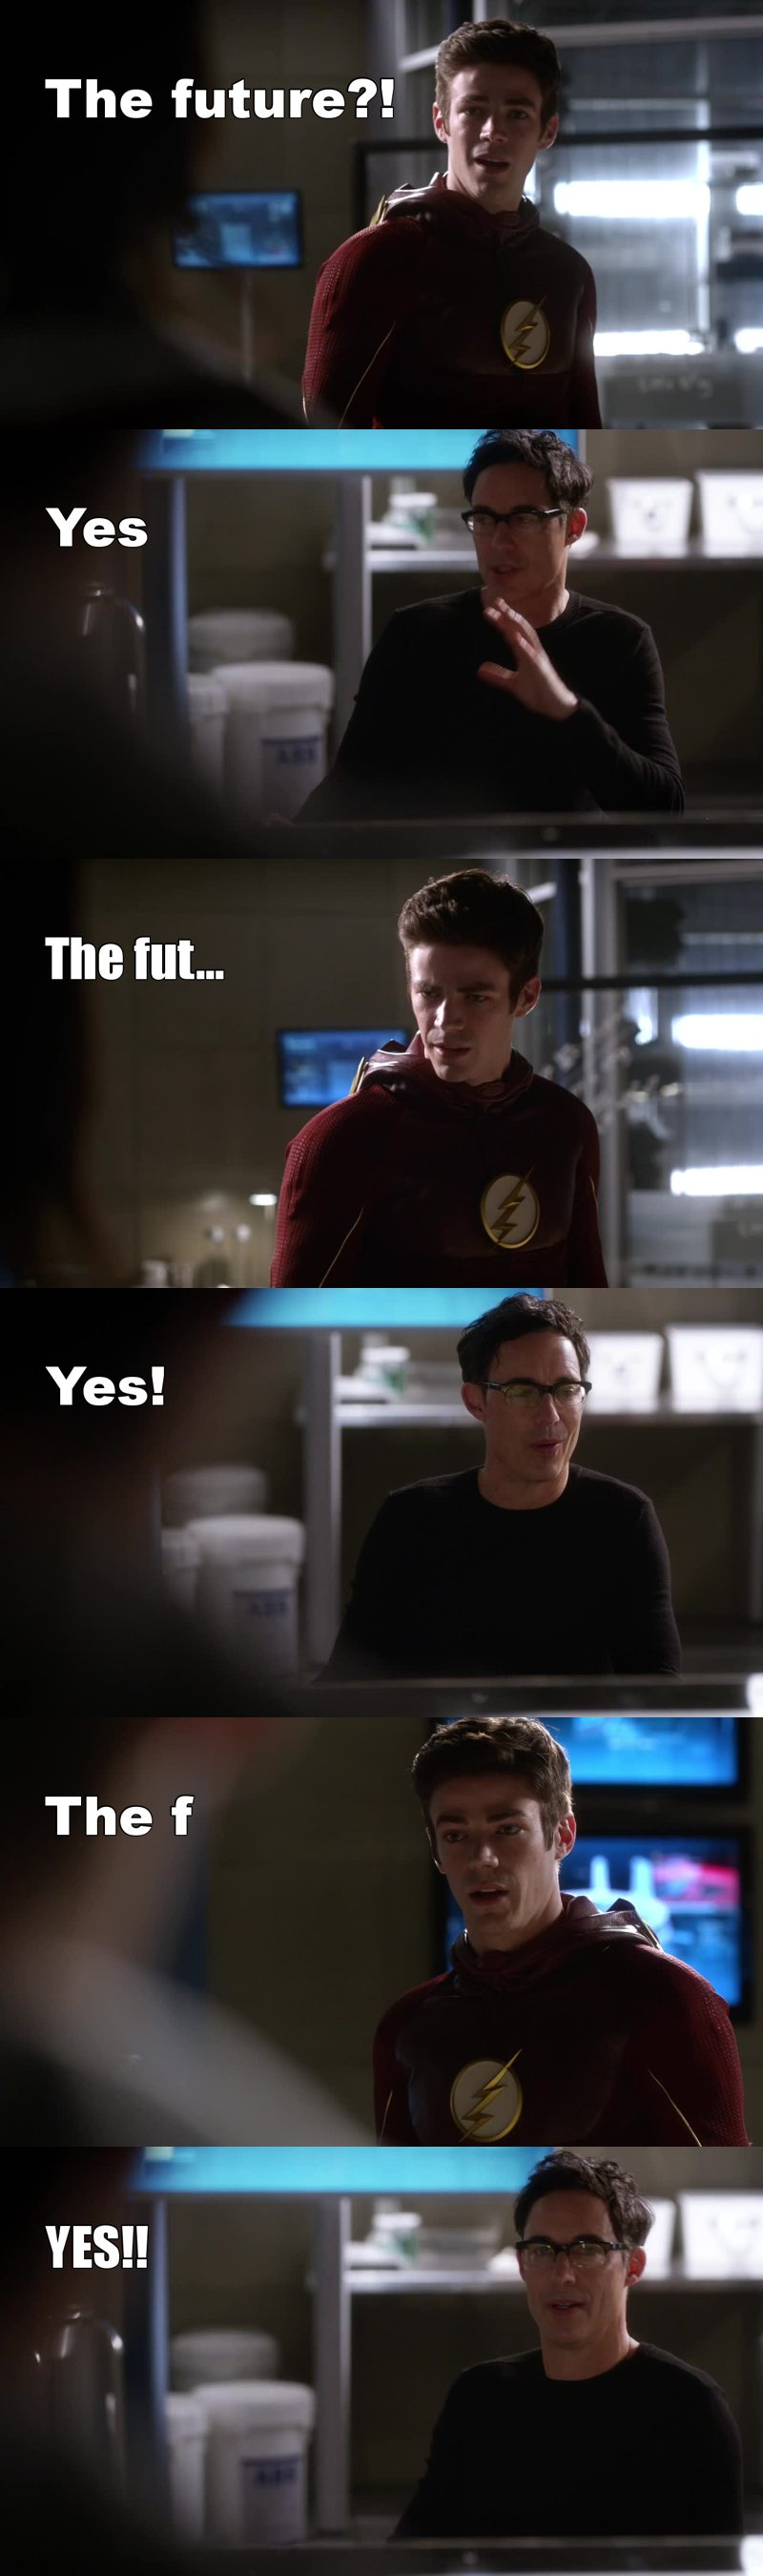 I laughed so much 😂 Gotta love scenes with Barry & Dr Wells